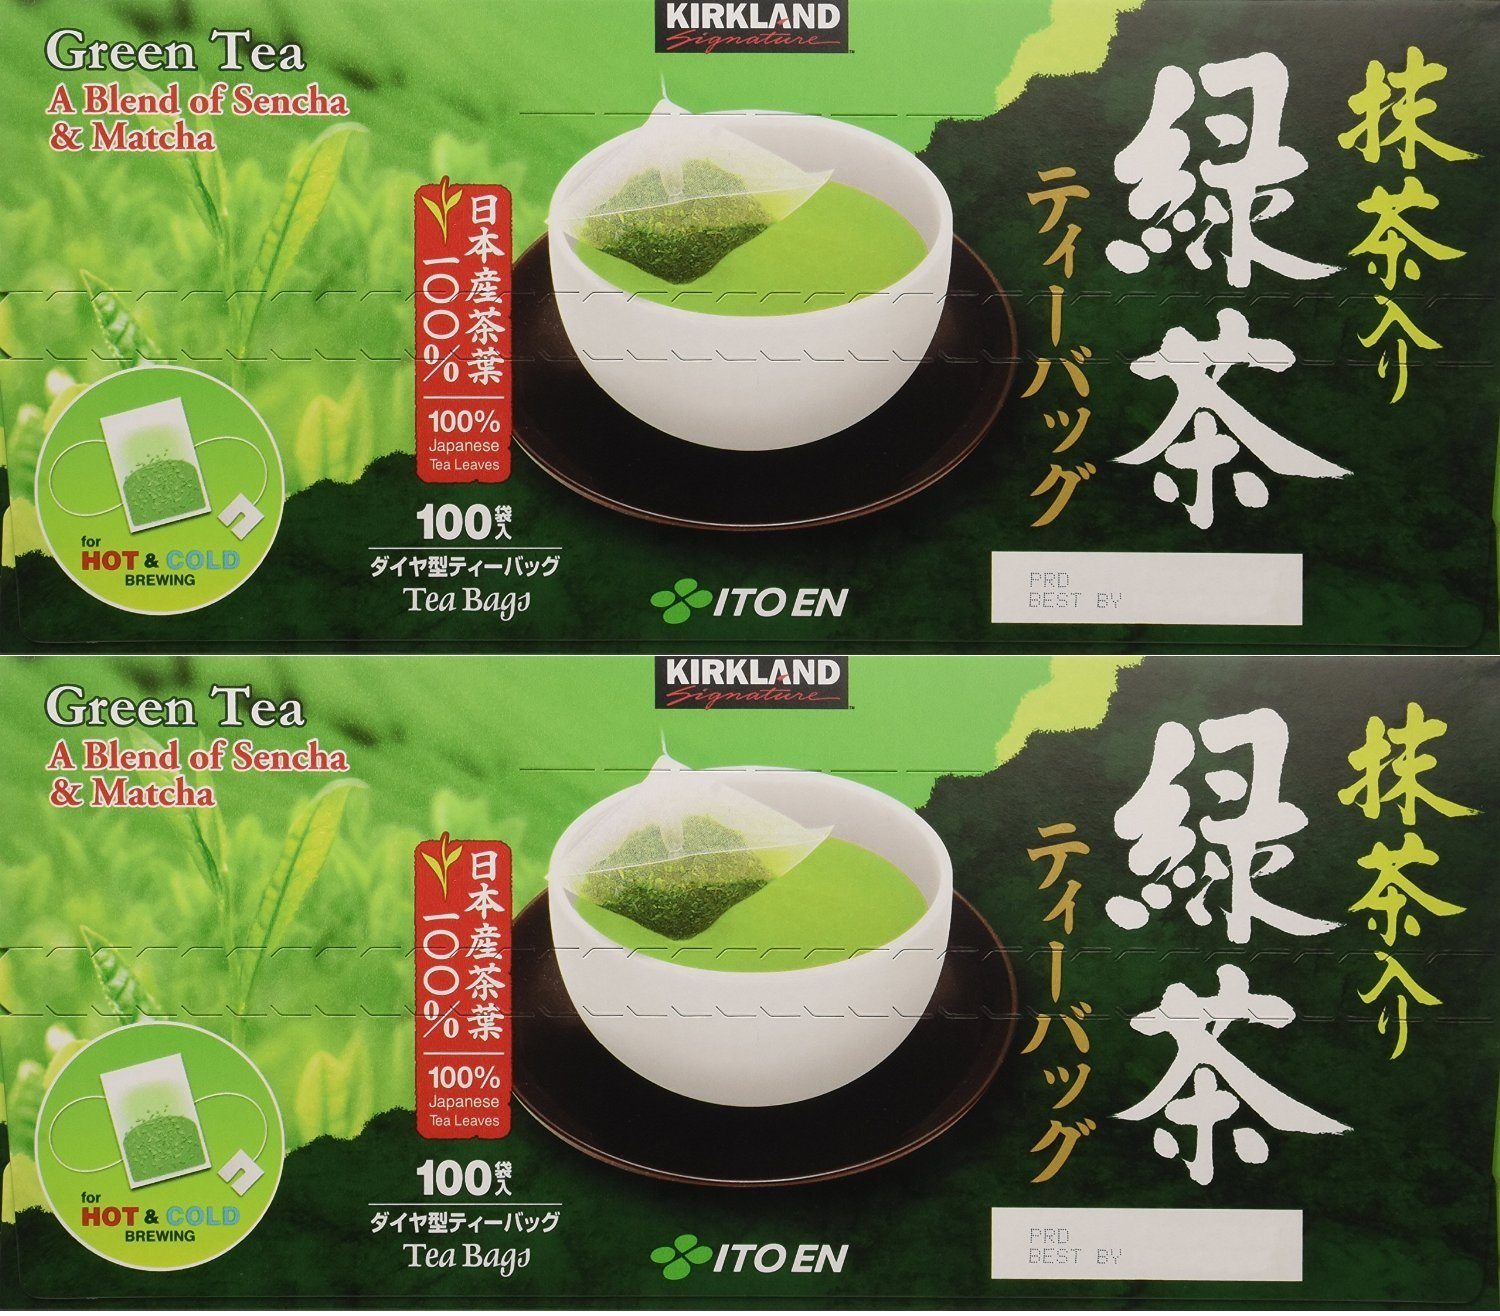 Kirkland Ito En Matcha Blend Japanese Green Tea tvzeLZ, 2Pack (100 Count)